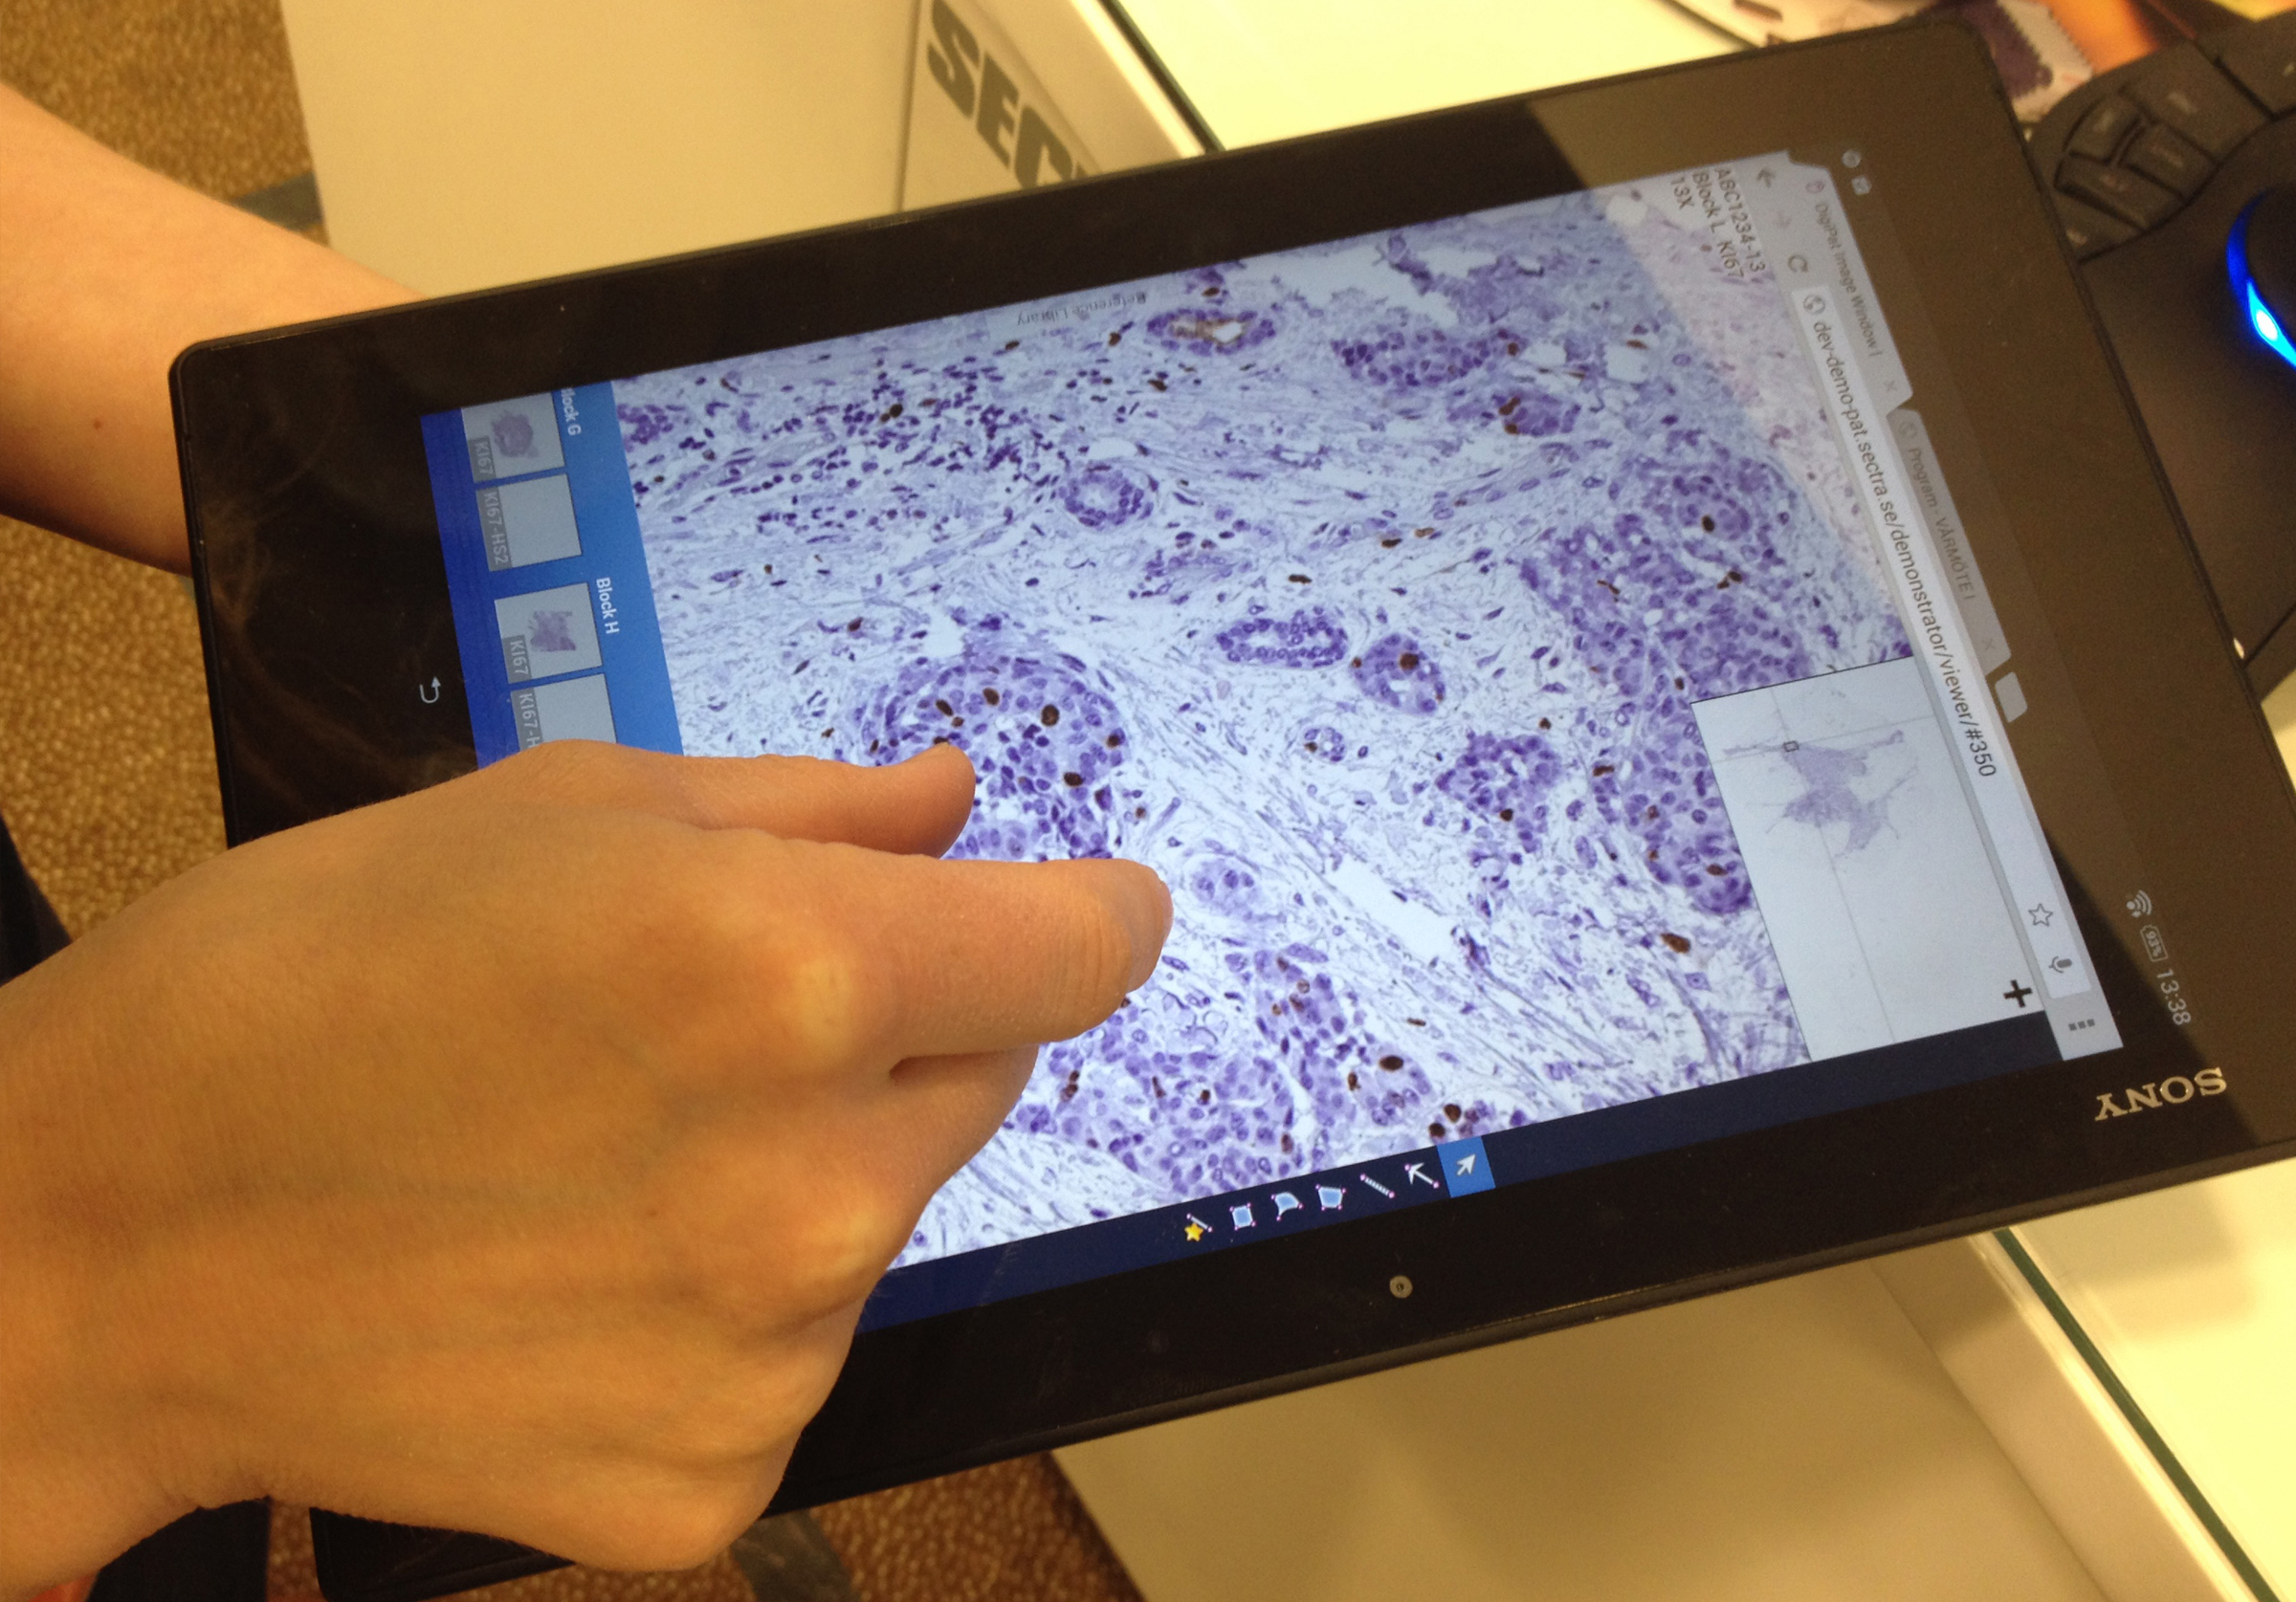 Digital pathology tissue sample view tablet